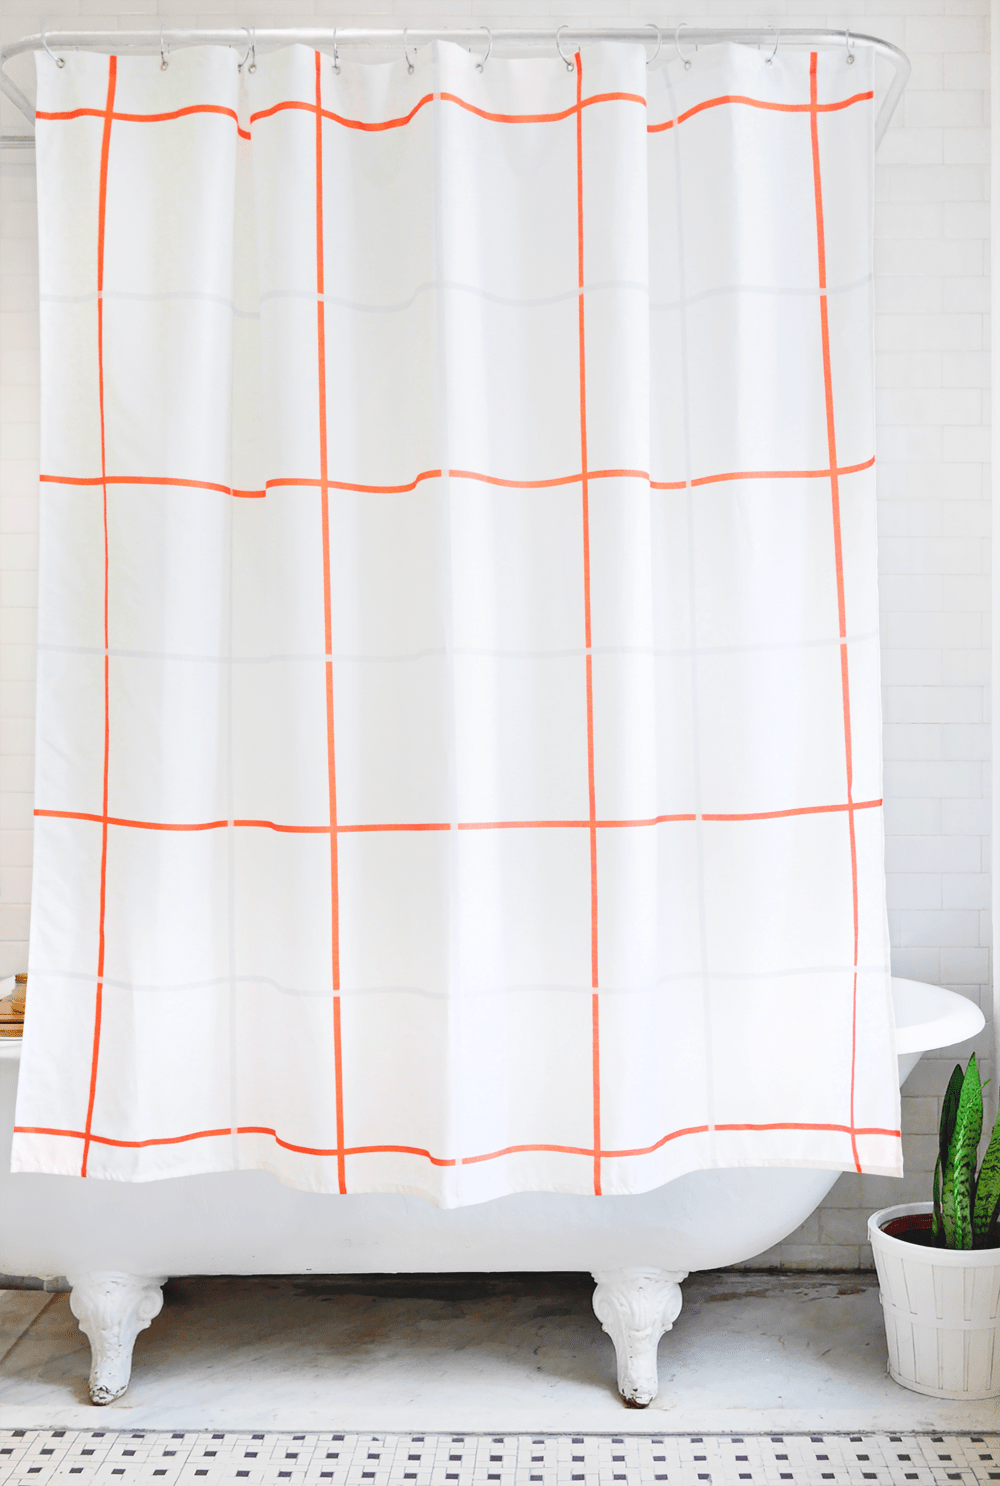 grid: orange and grey - Bathage